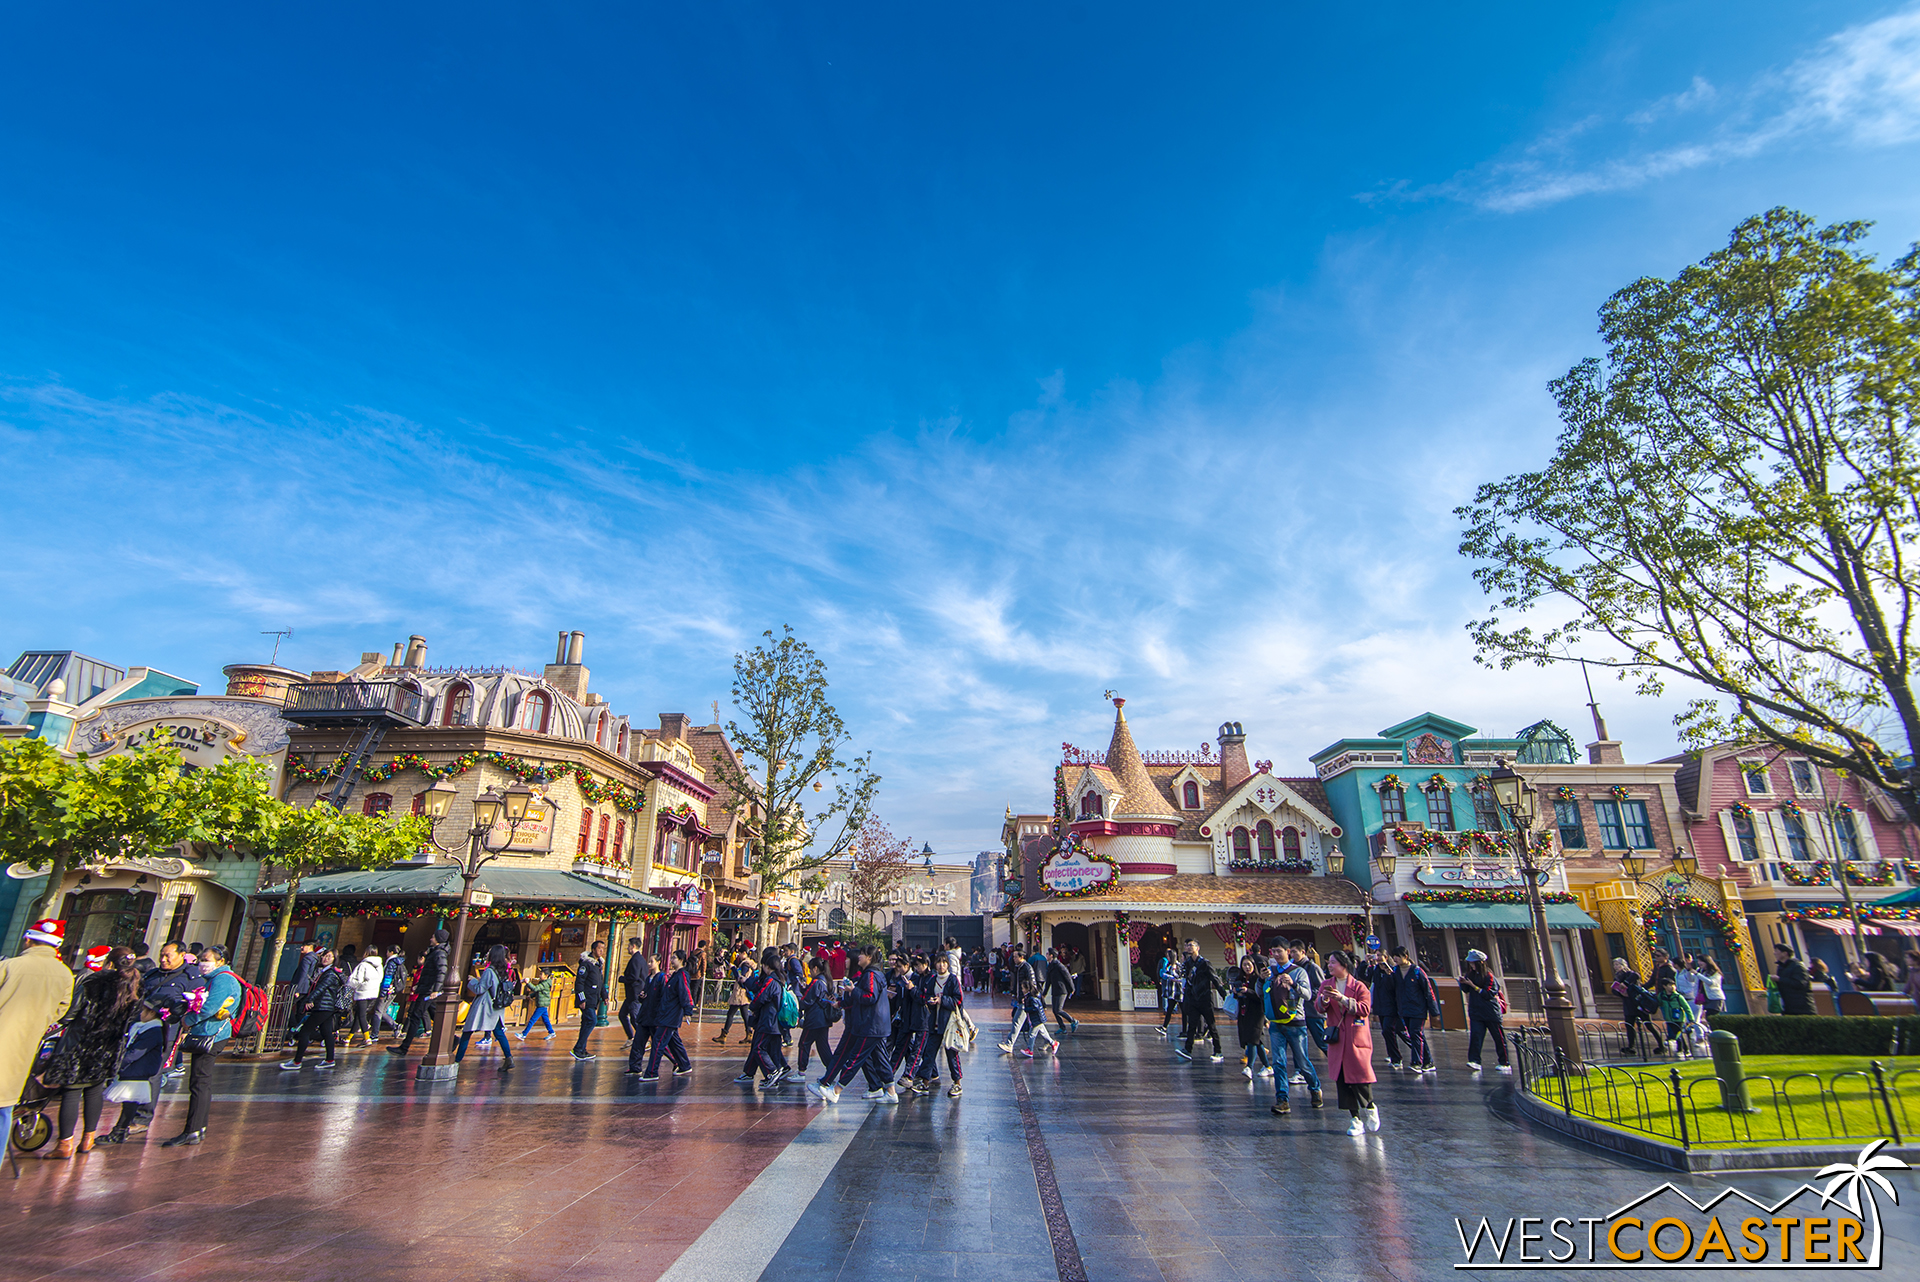 Mickey Avenue is shorter than Main Street but packed with architectural details.